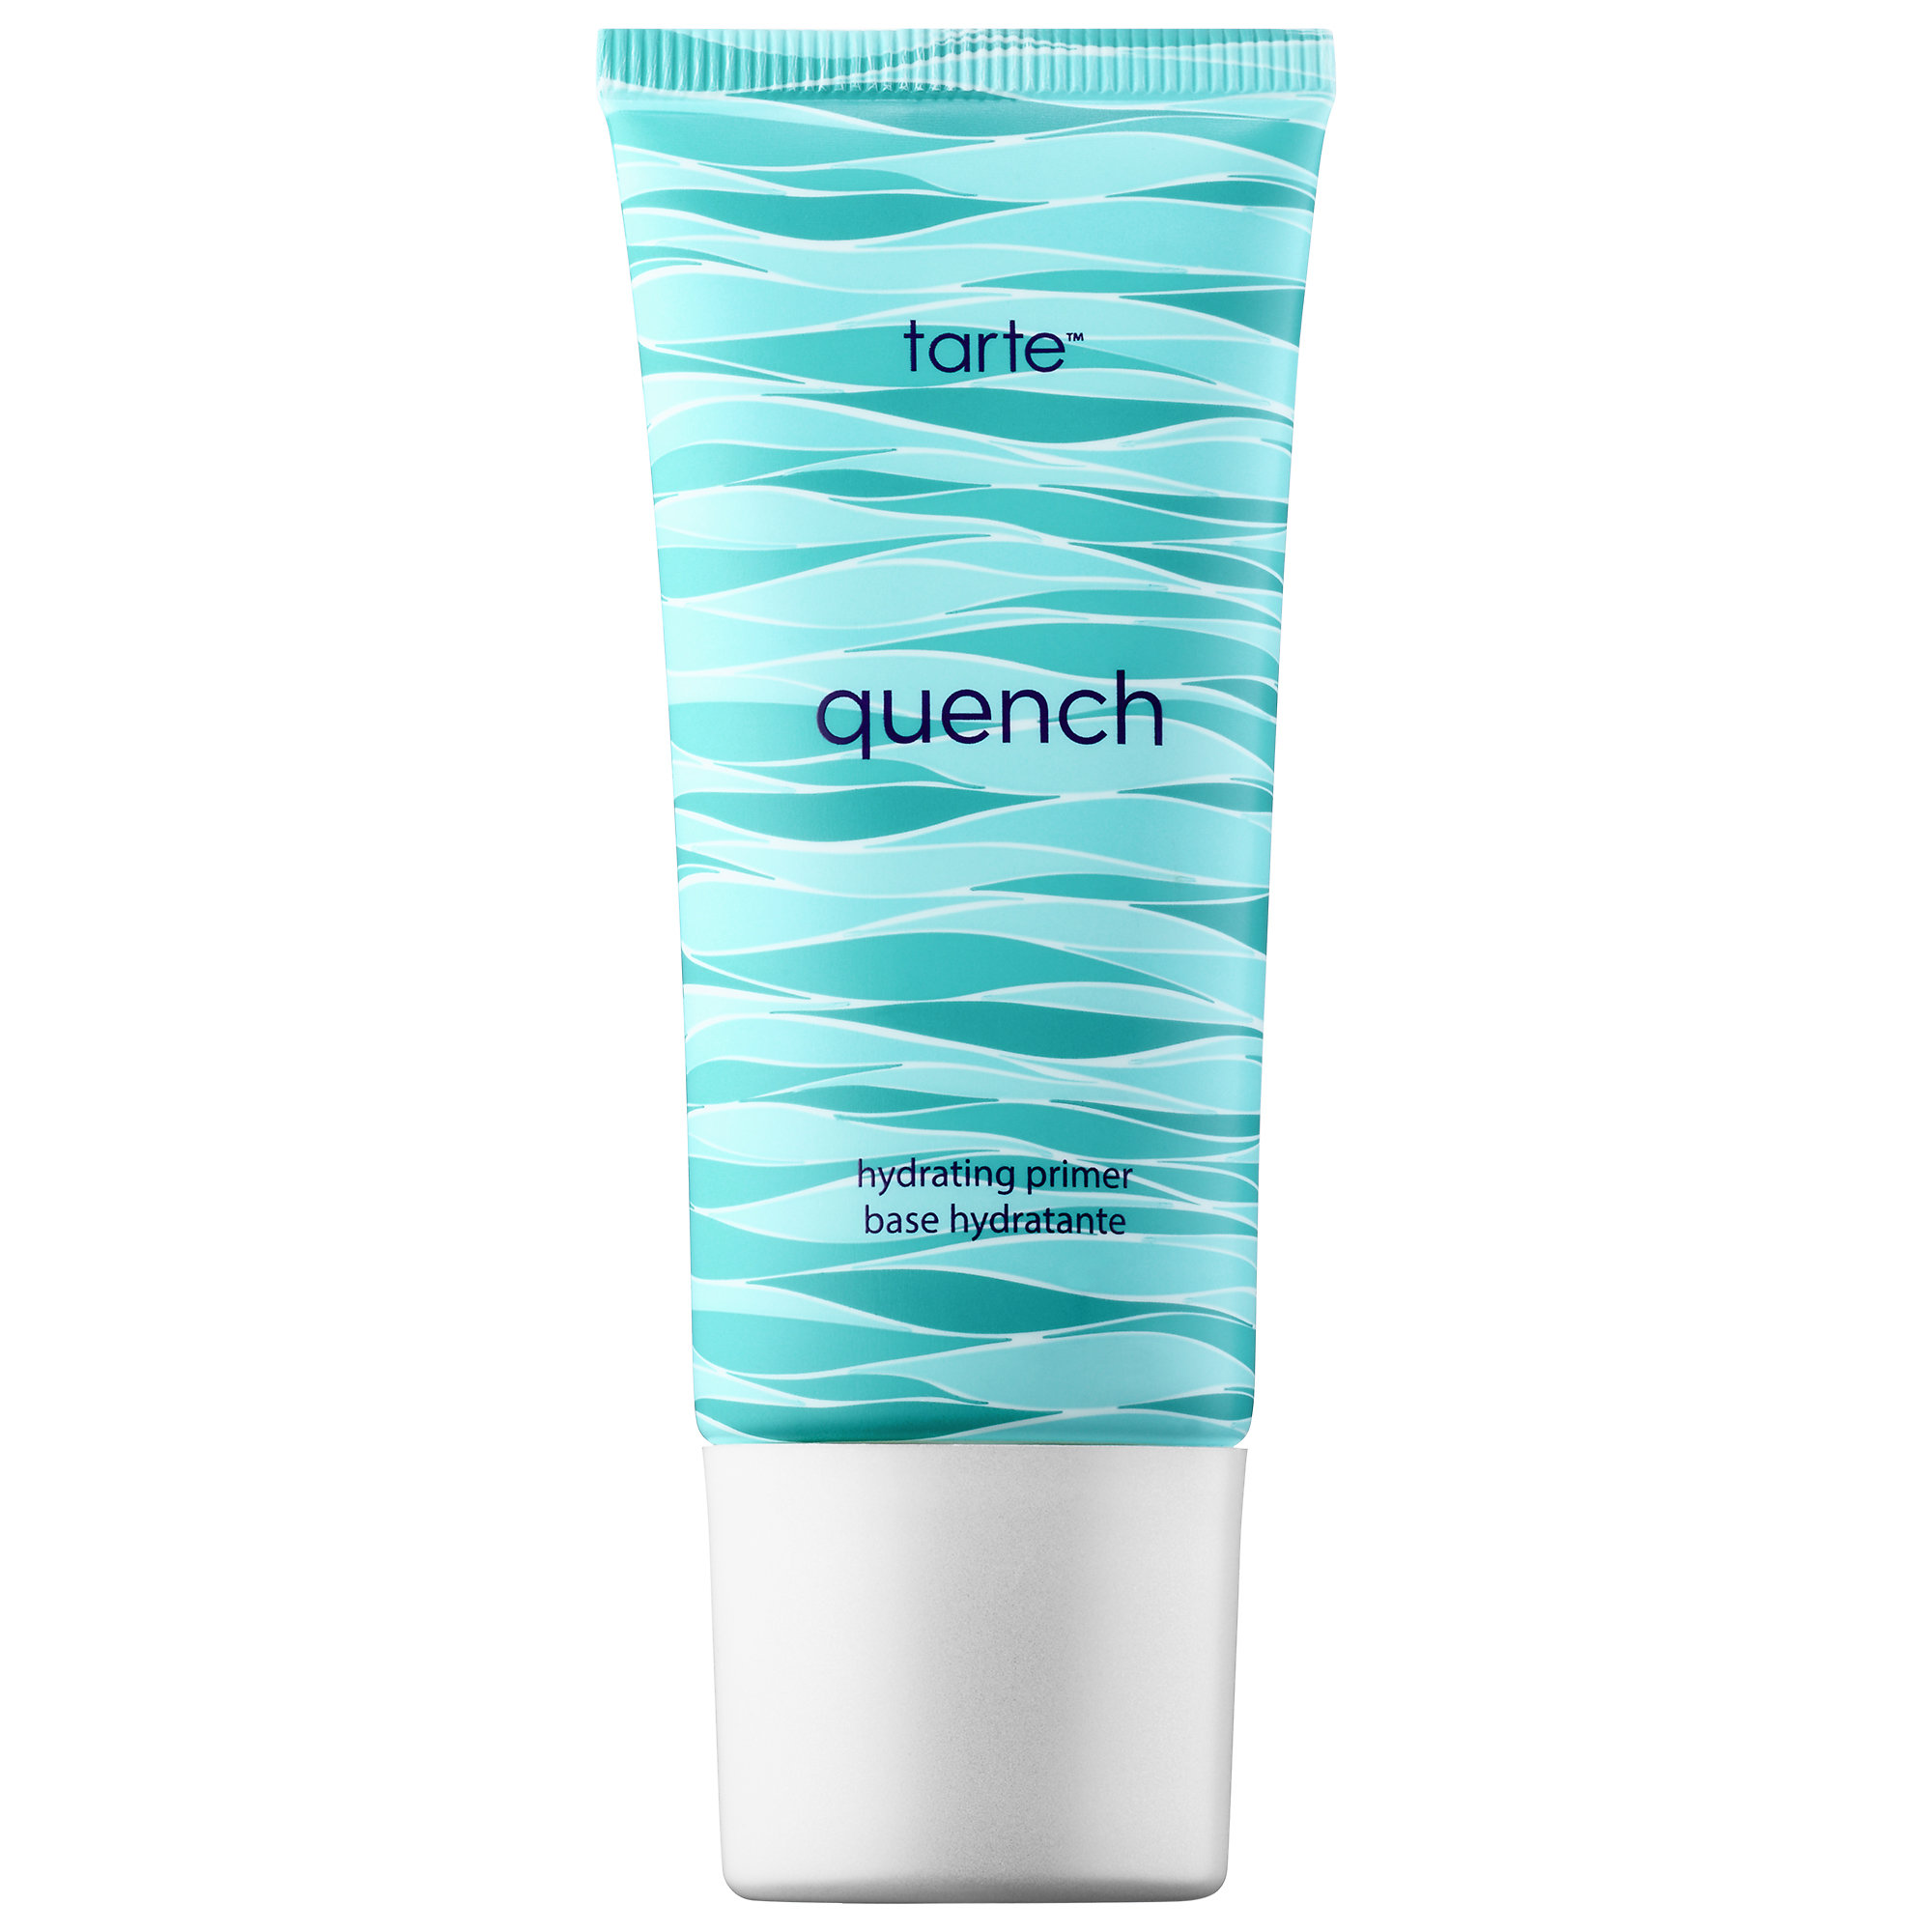 Quench Hydrating Primer - Rainforest Of The Sea™ Collection